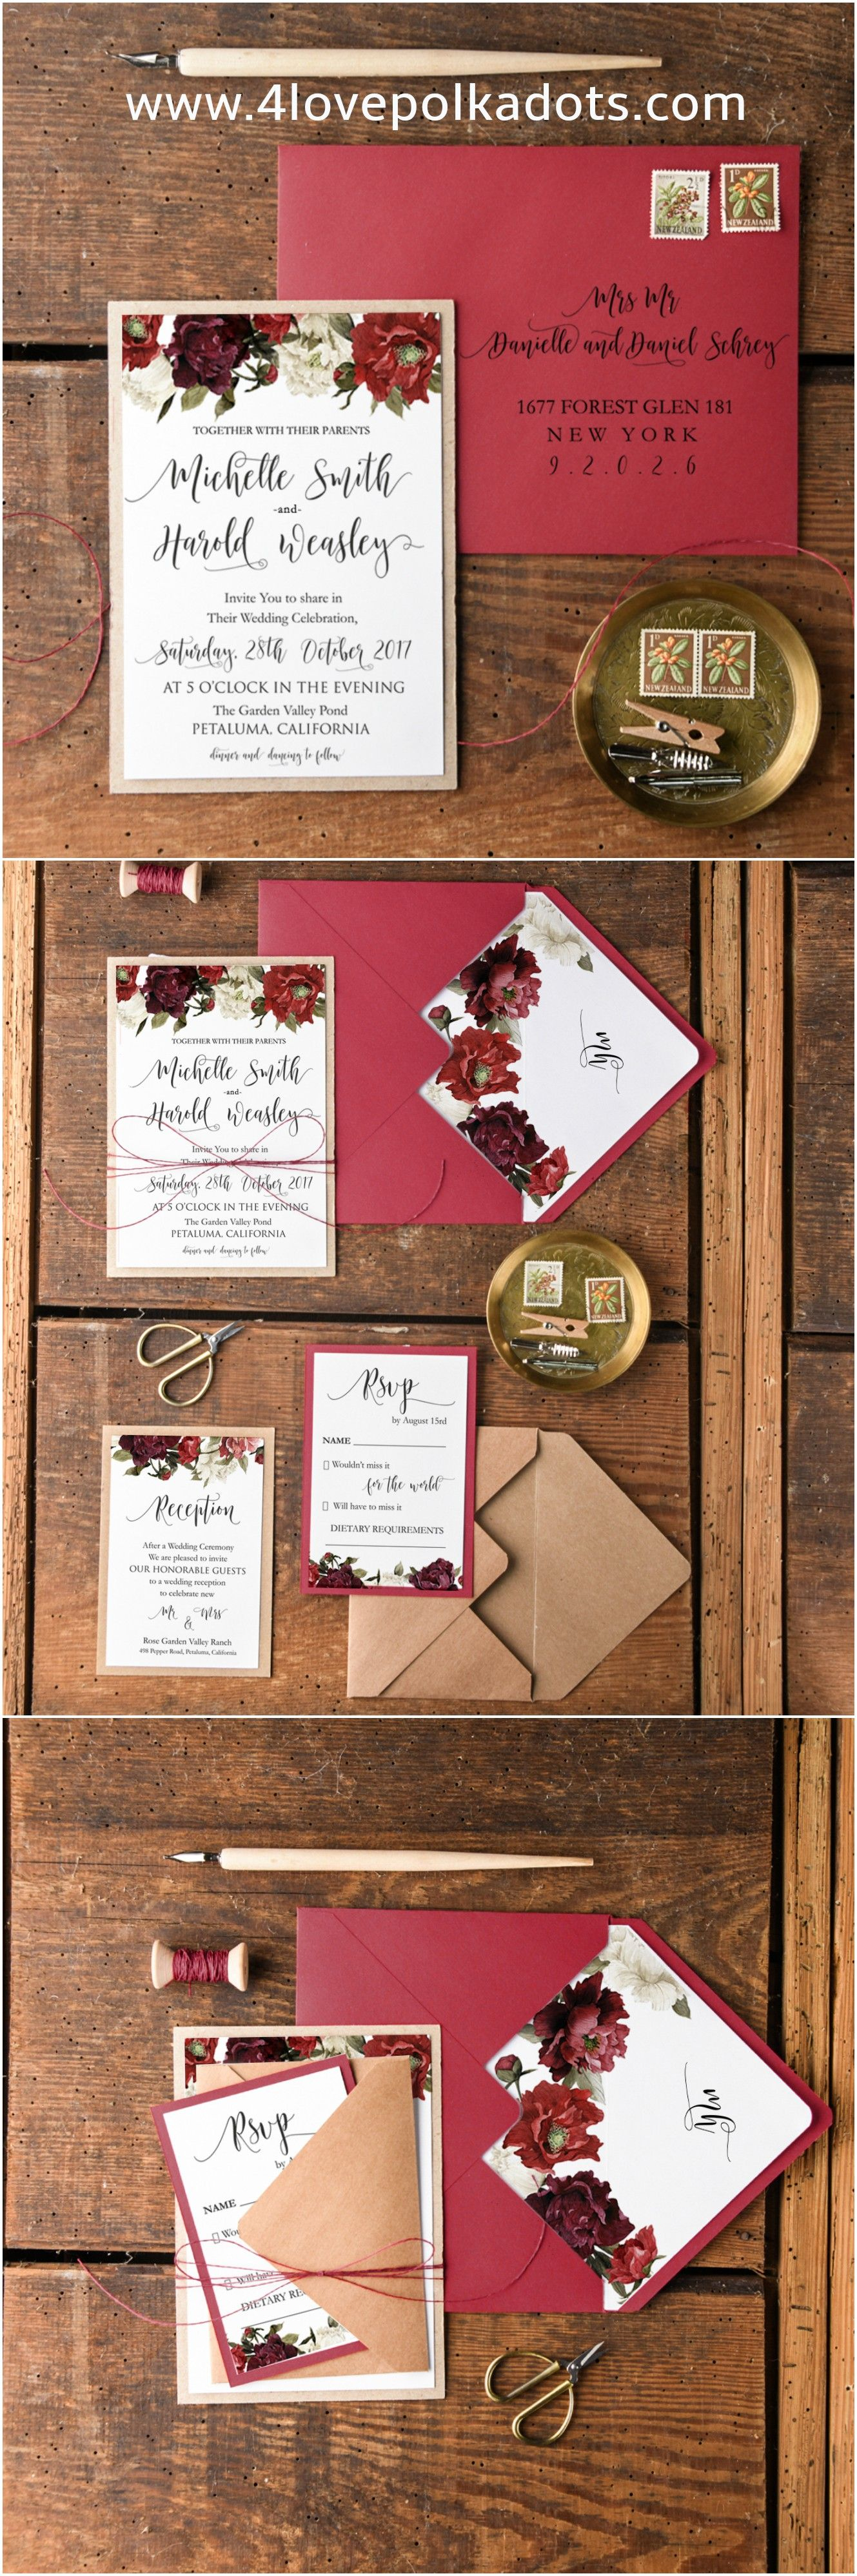 Burgundy Deep Red Wedding Invitation Set From 4lovepolkadots